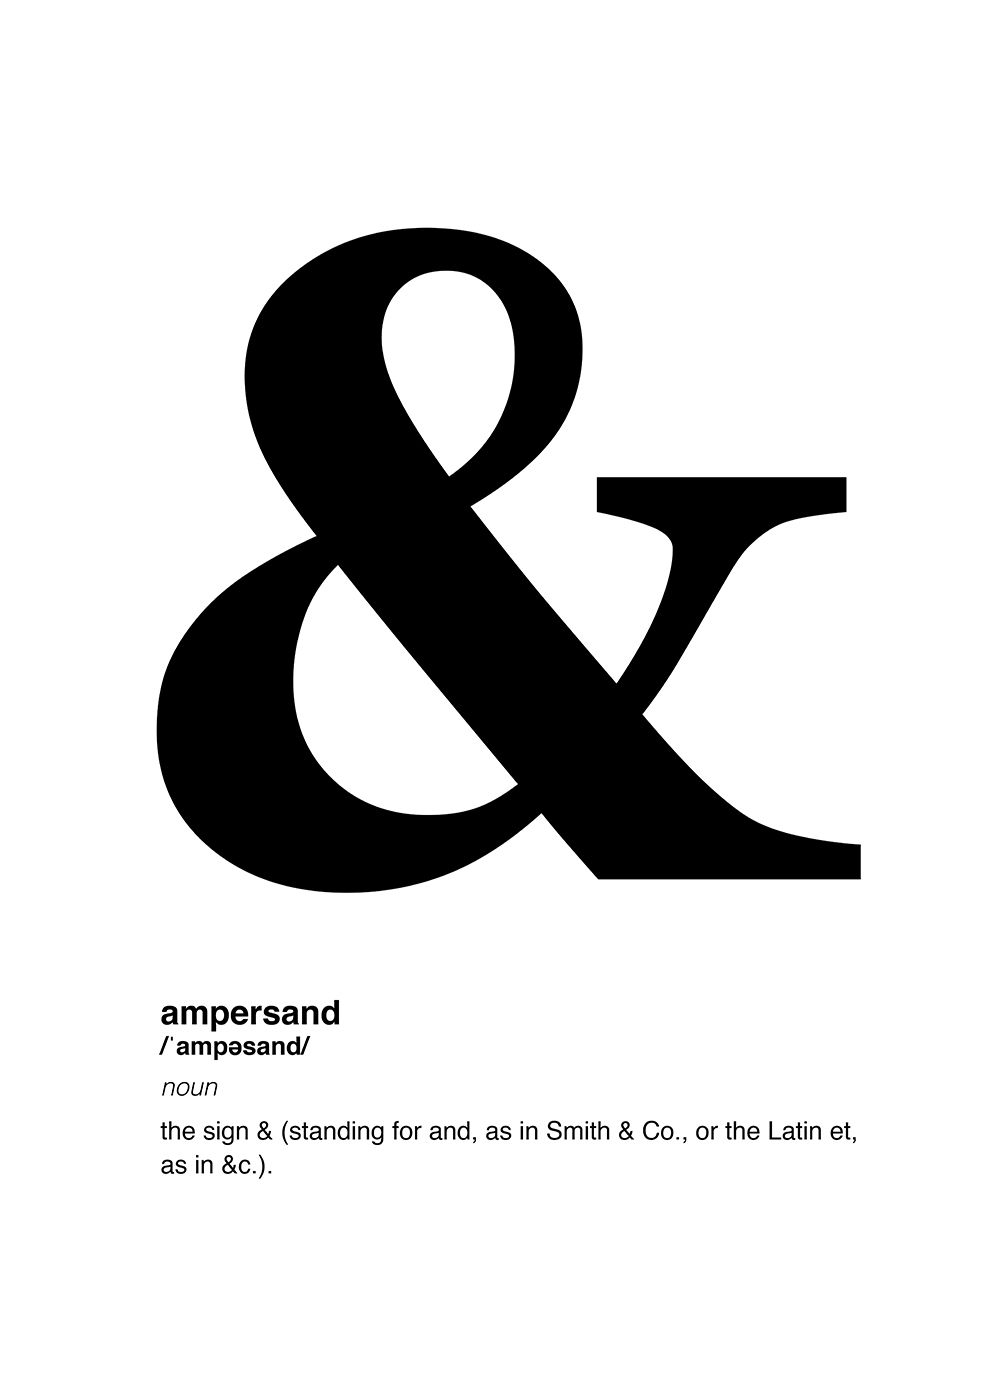 Definition of a poster design - Poster Definition Of Ampersand